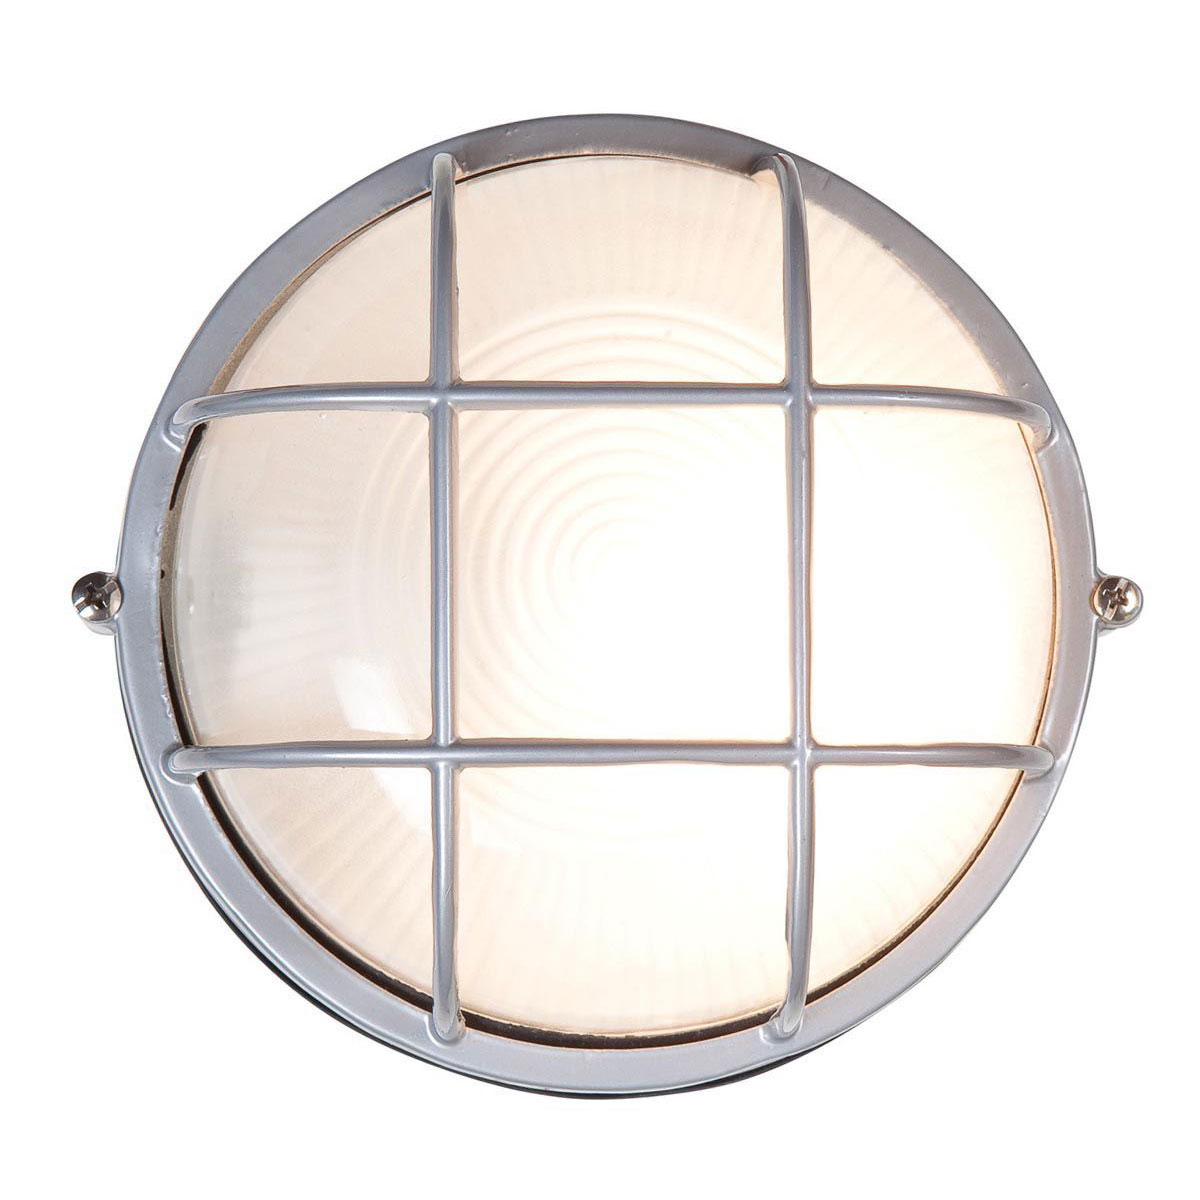 Nauticus Round Outdoor Bulkhead Wall Ceiling Light By Access 20296 Sat Fst